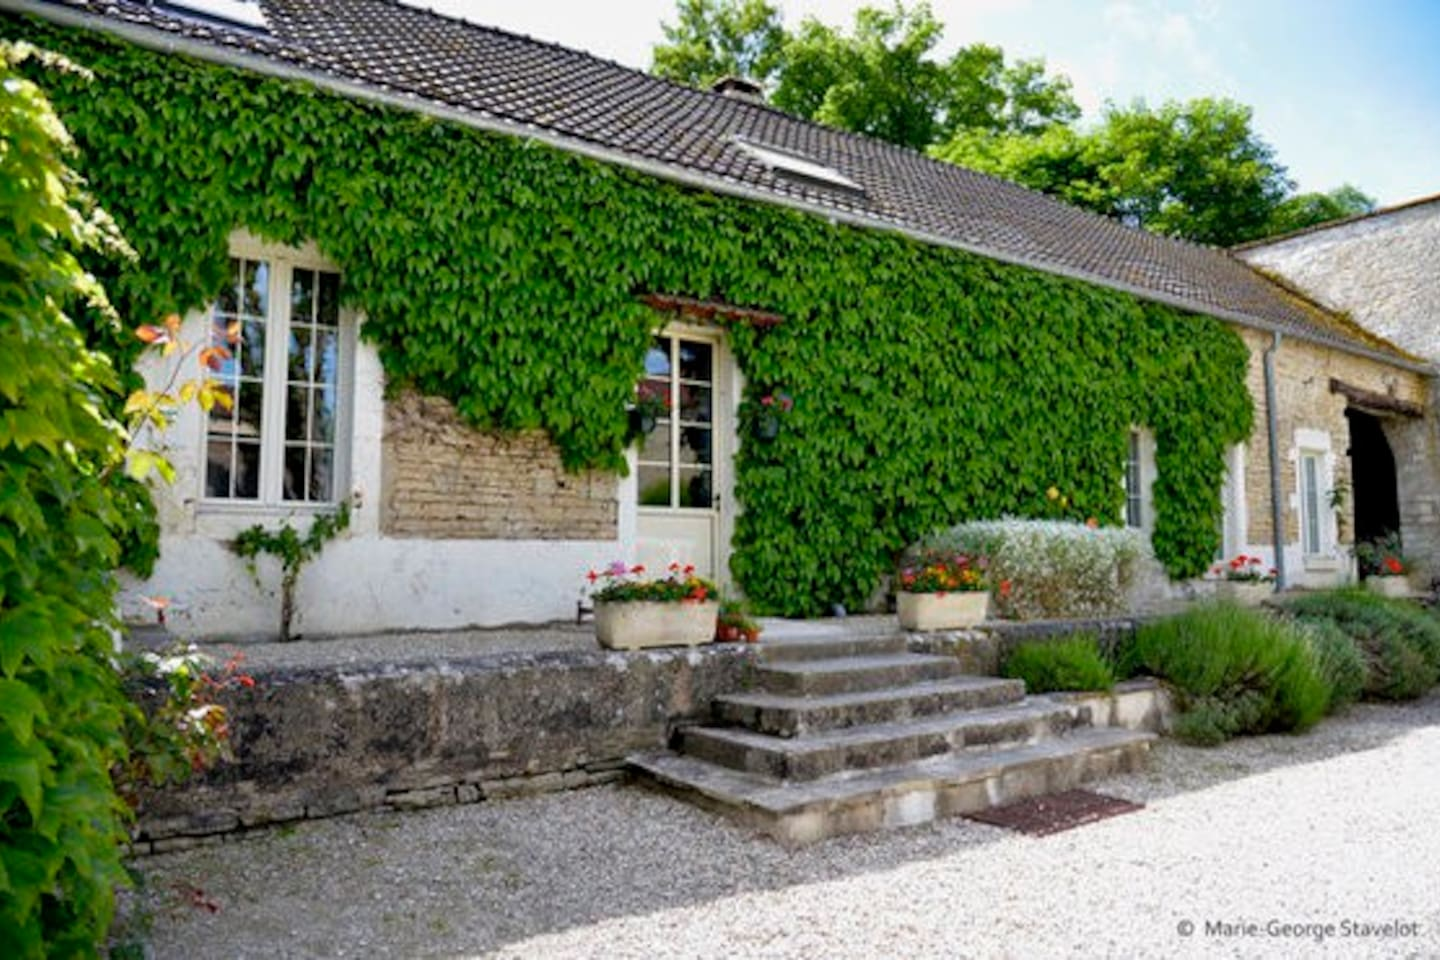 Coach House from the enclosed courtyard of Le Petit Village